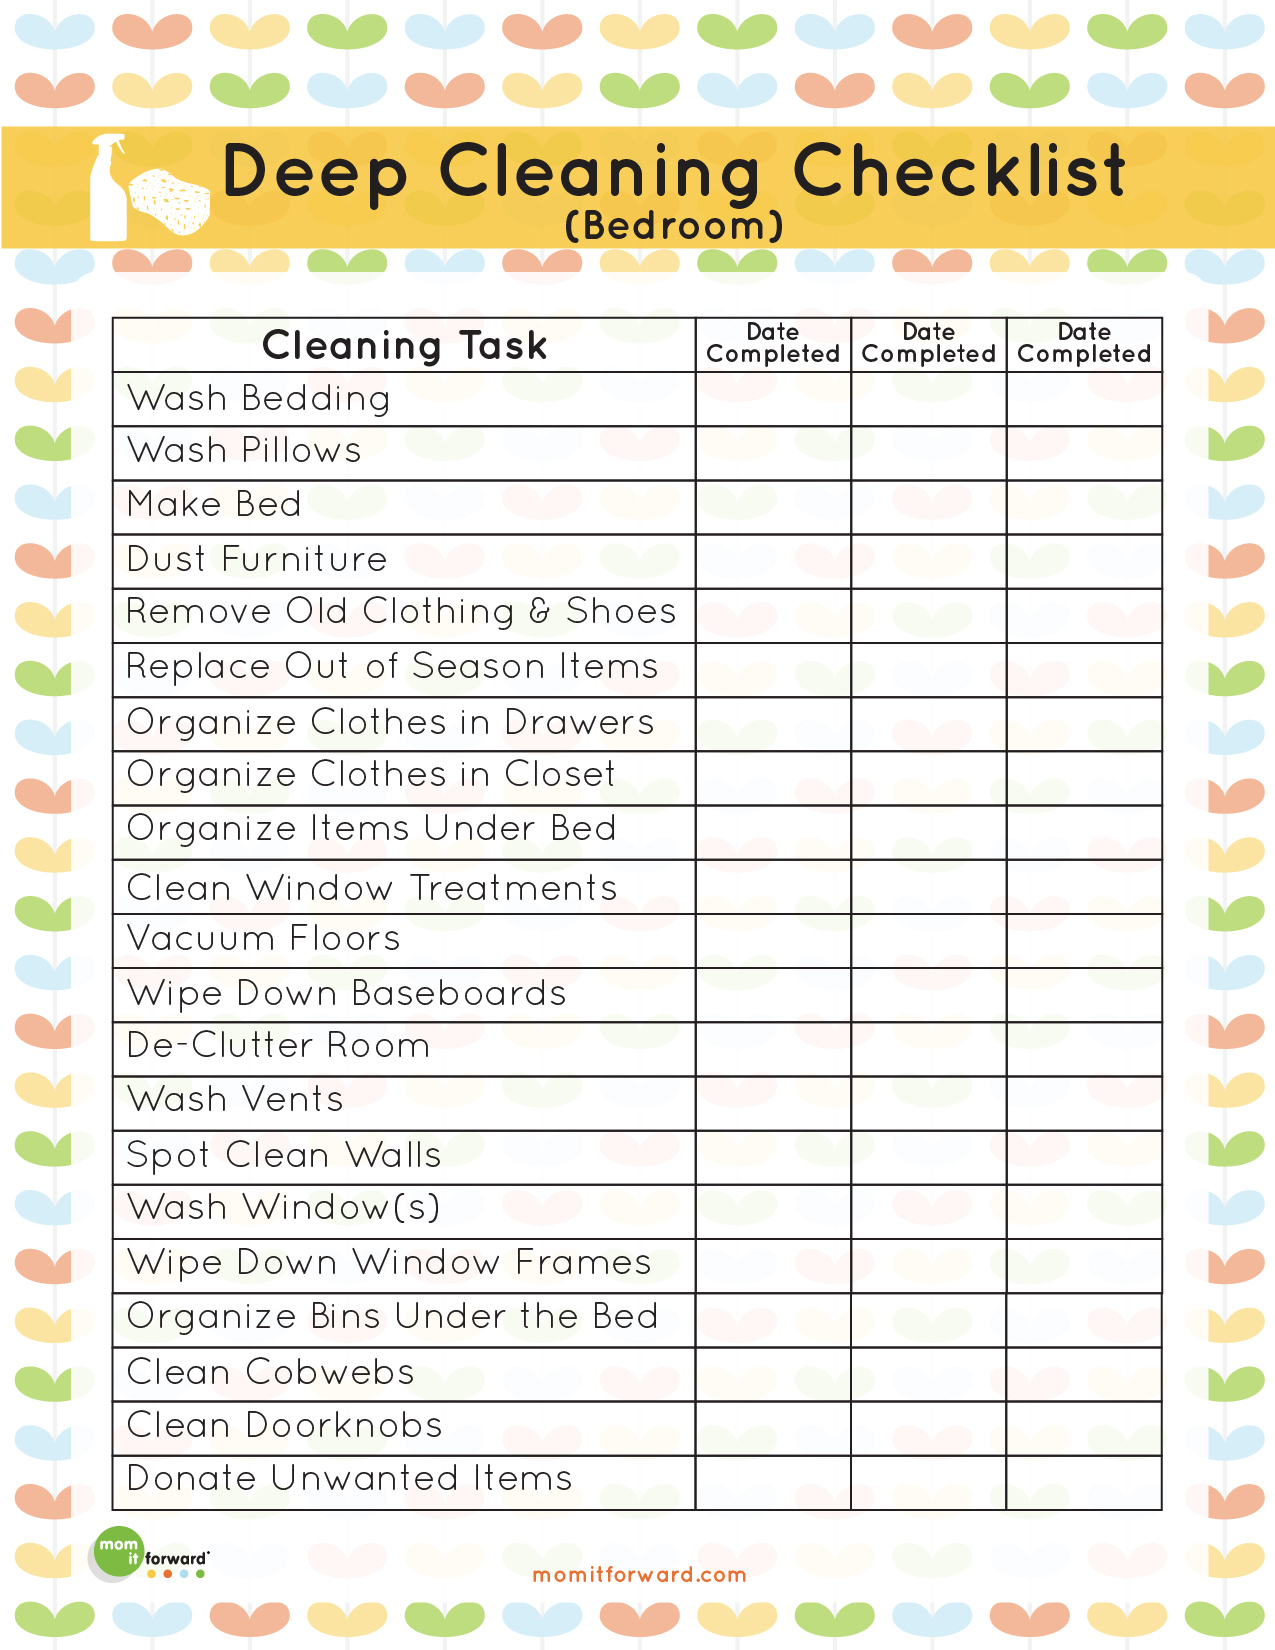 8 Images of Room Cleaning Checklist Printable